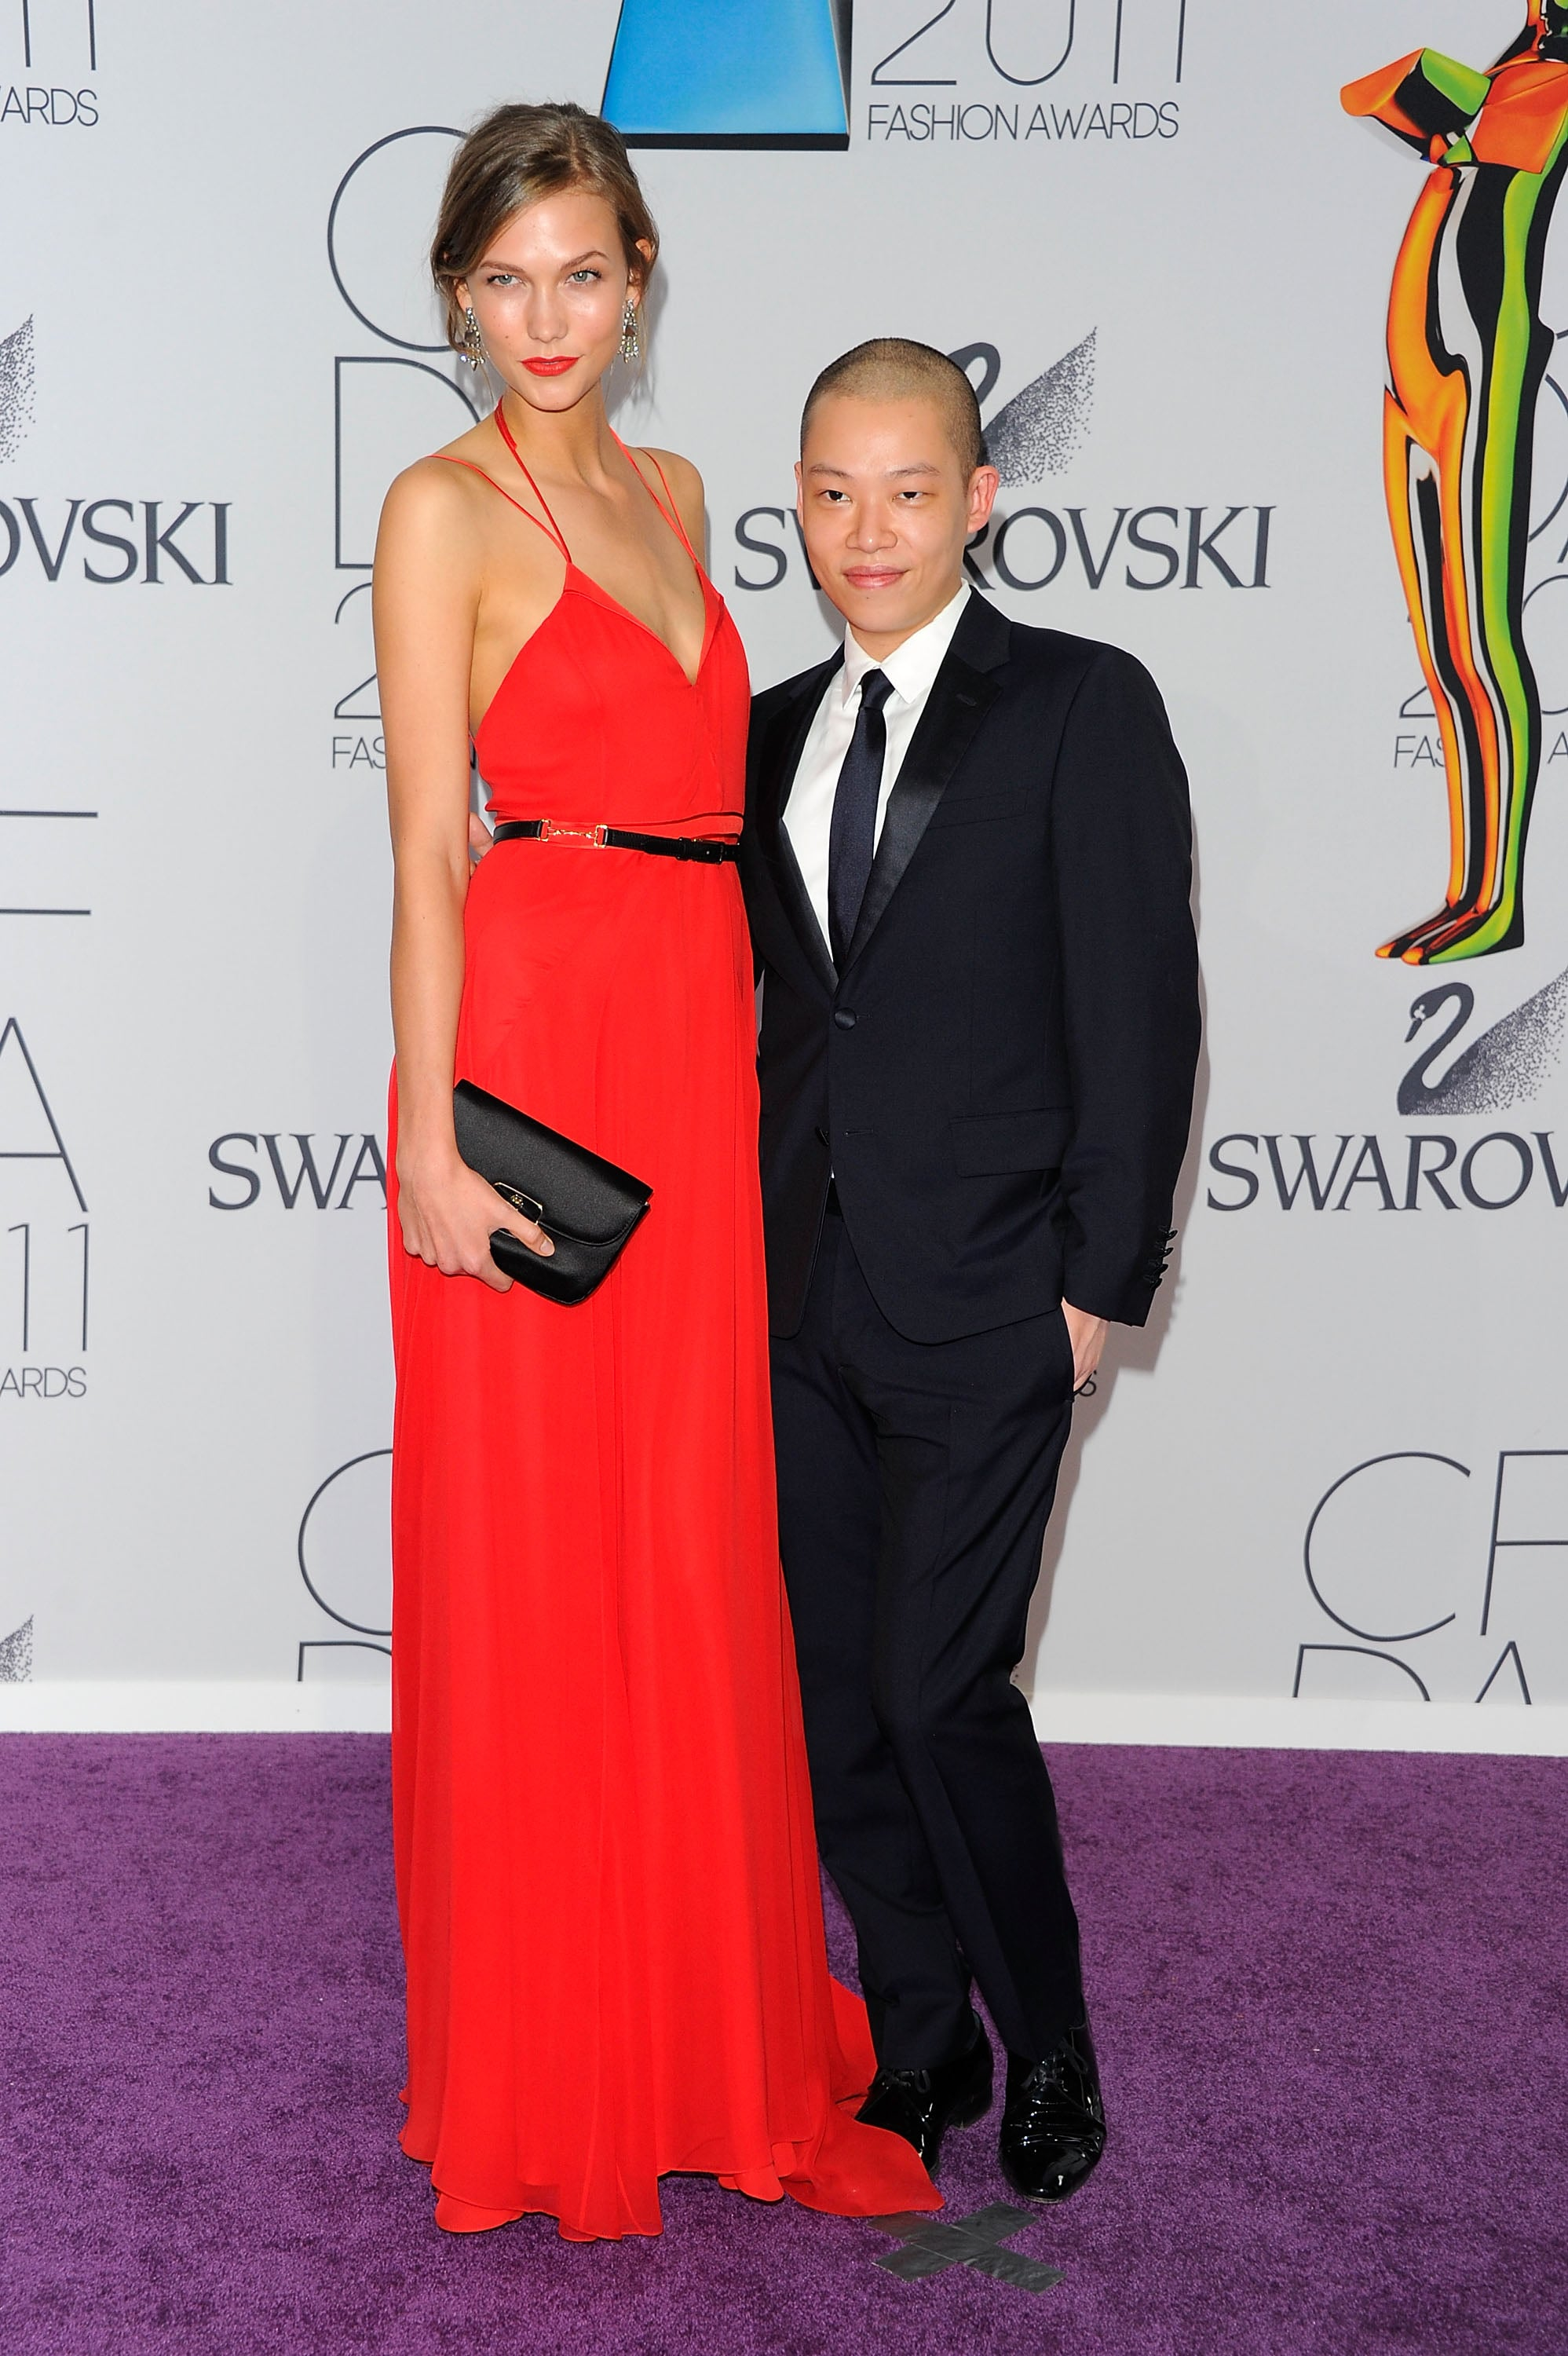 Pictures of Celebrities and Dresses at the 2011 CFDA Fashion Awards ...